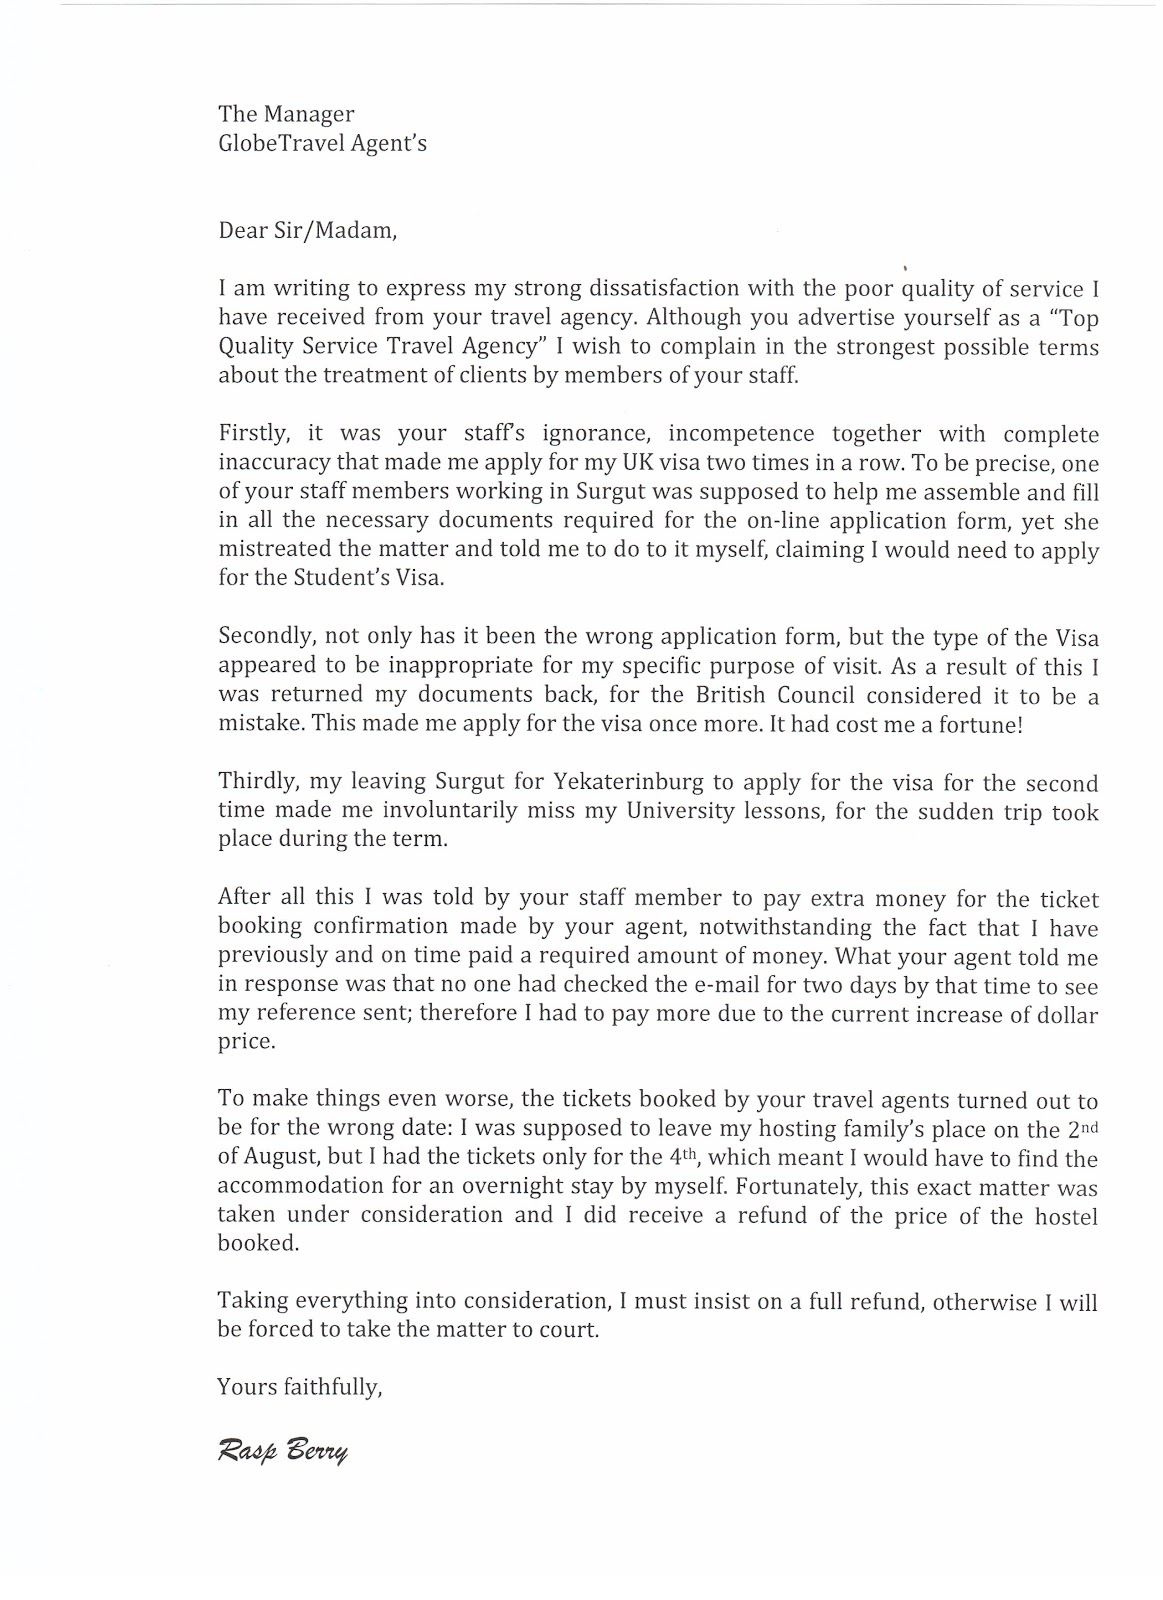 Complaint letter essay samples 5 complaint email examples samples how to structure your letter of complaint your letter of complaint should follow the standard composition format for a formal letter spiritdancerdesigns Image collections